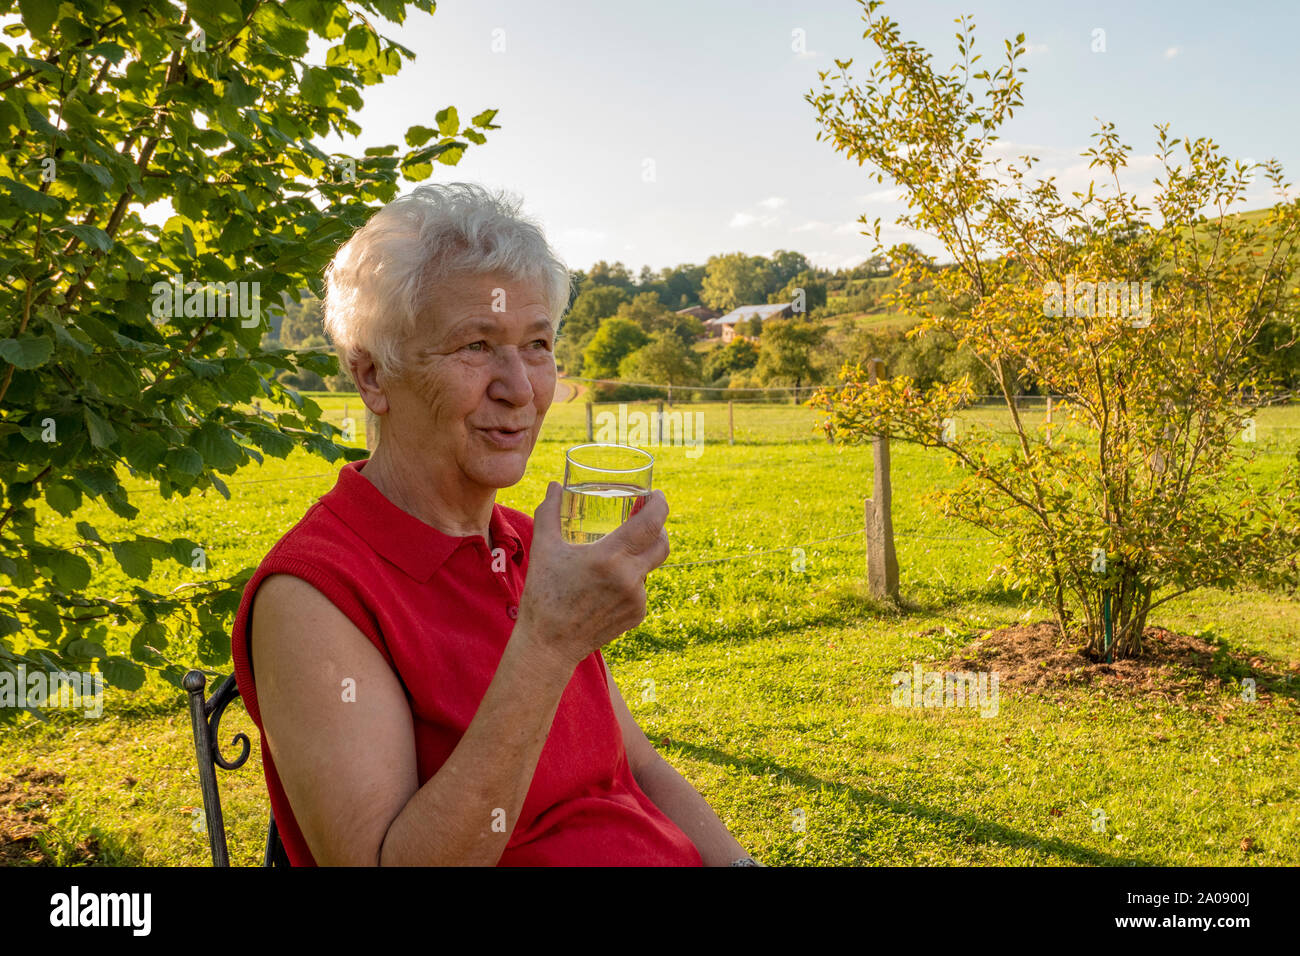 old lady sitting comfortably in the garden and drinking a glass of water Stock Photo